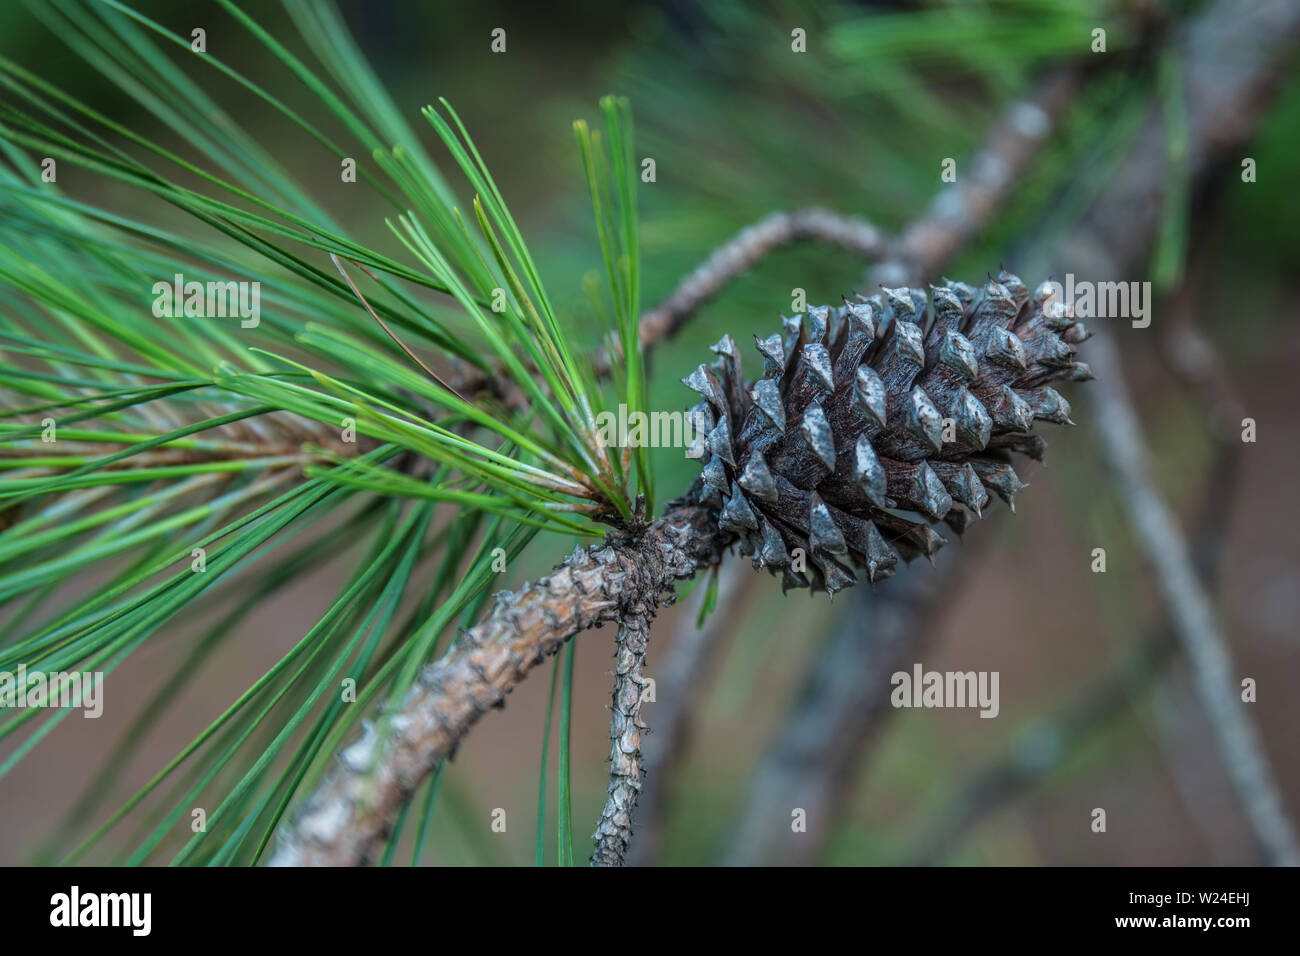 Pine cone already dispersed the seeds for the next season still on the pine tree branch in the woodlands - Stock Image